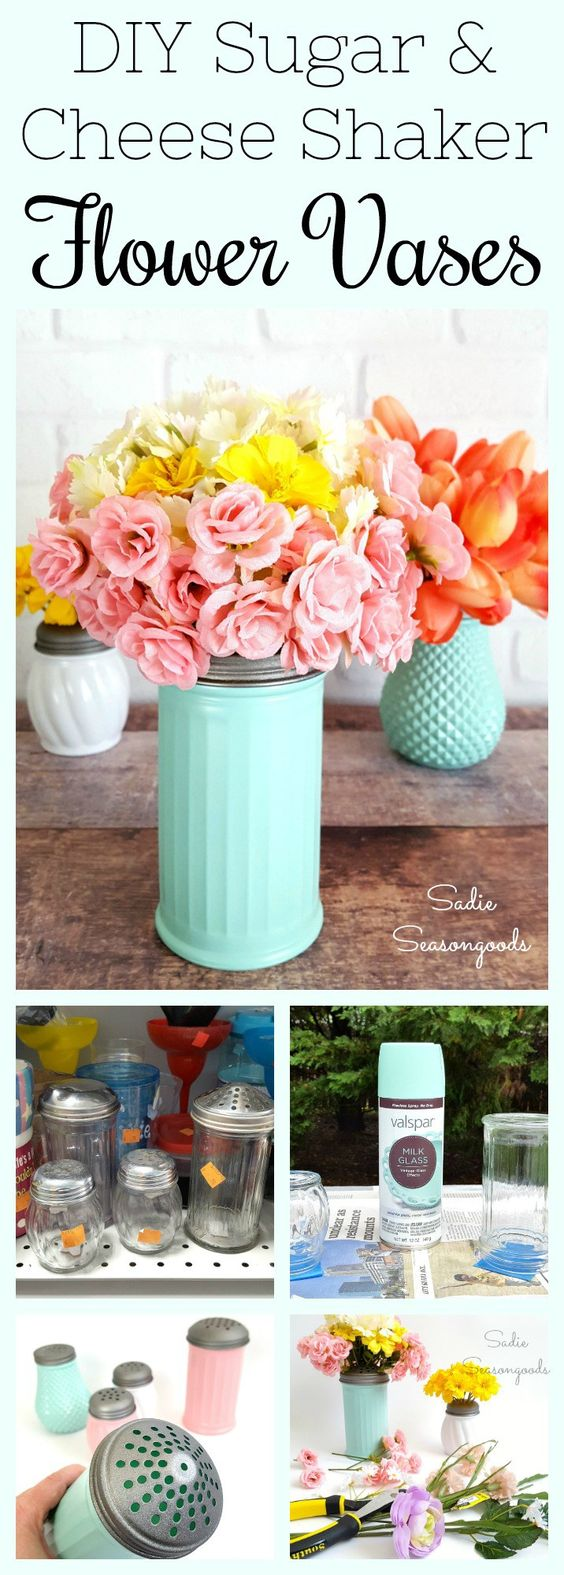 DIY Vases From Dollar Store Cheese & Sugar Shakers.